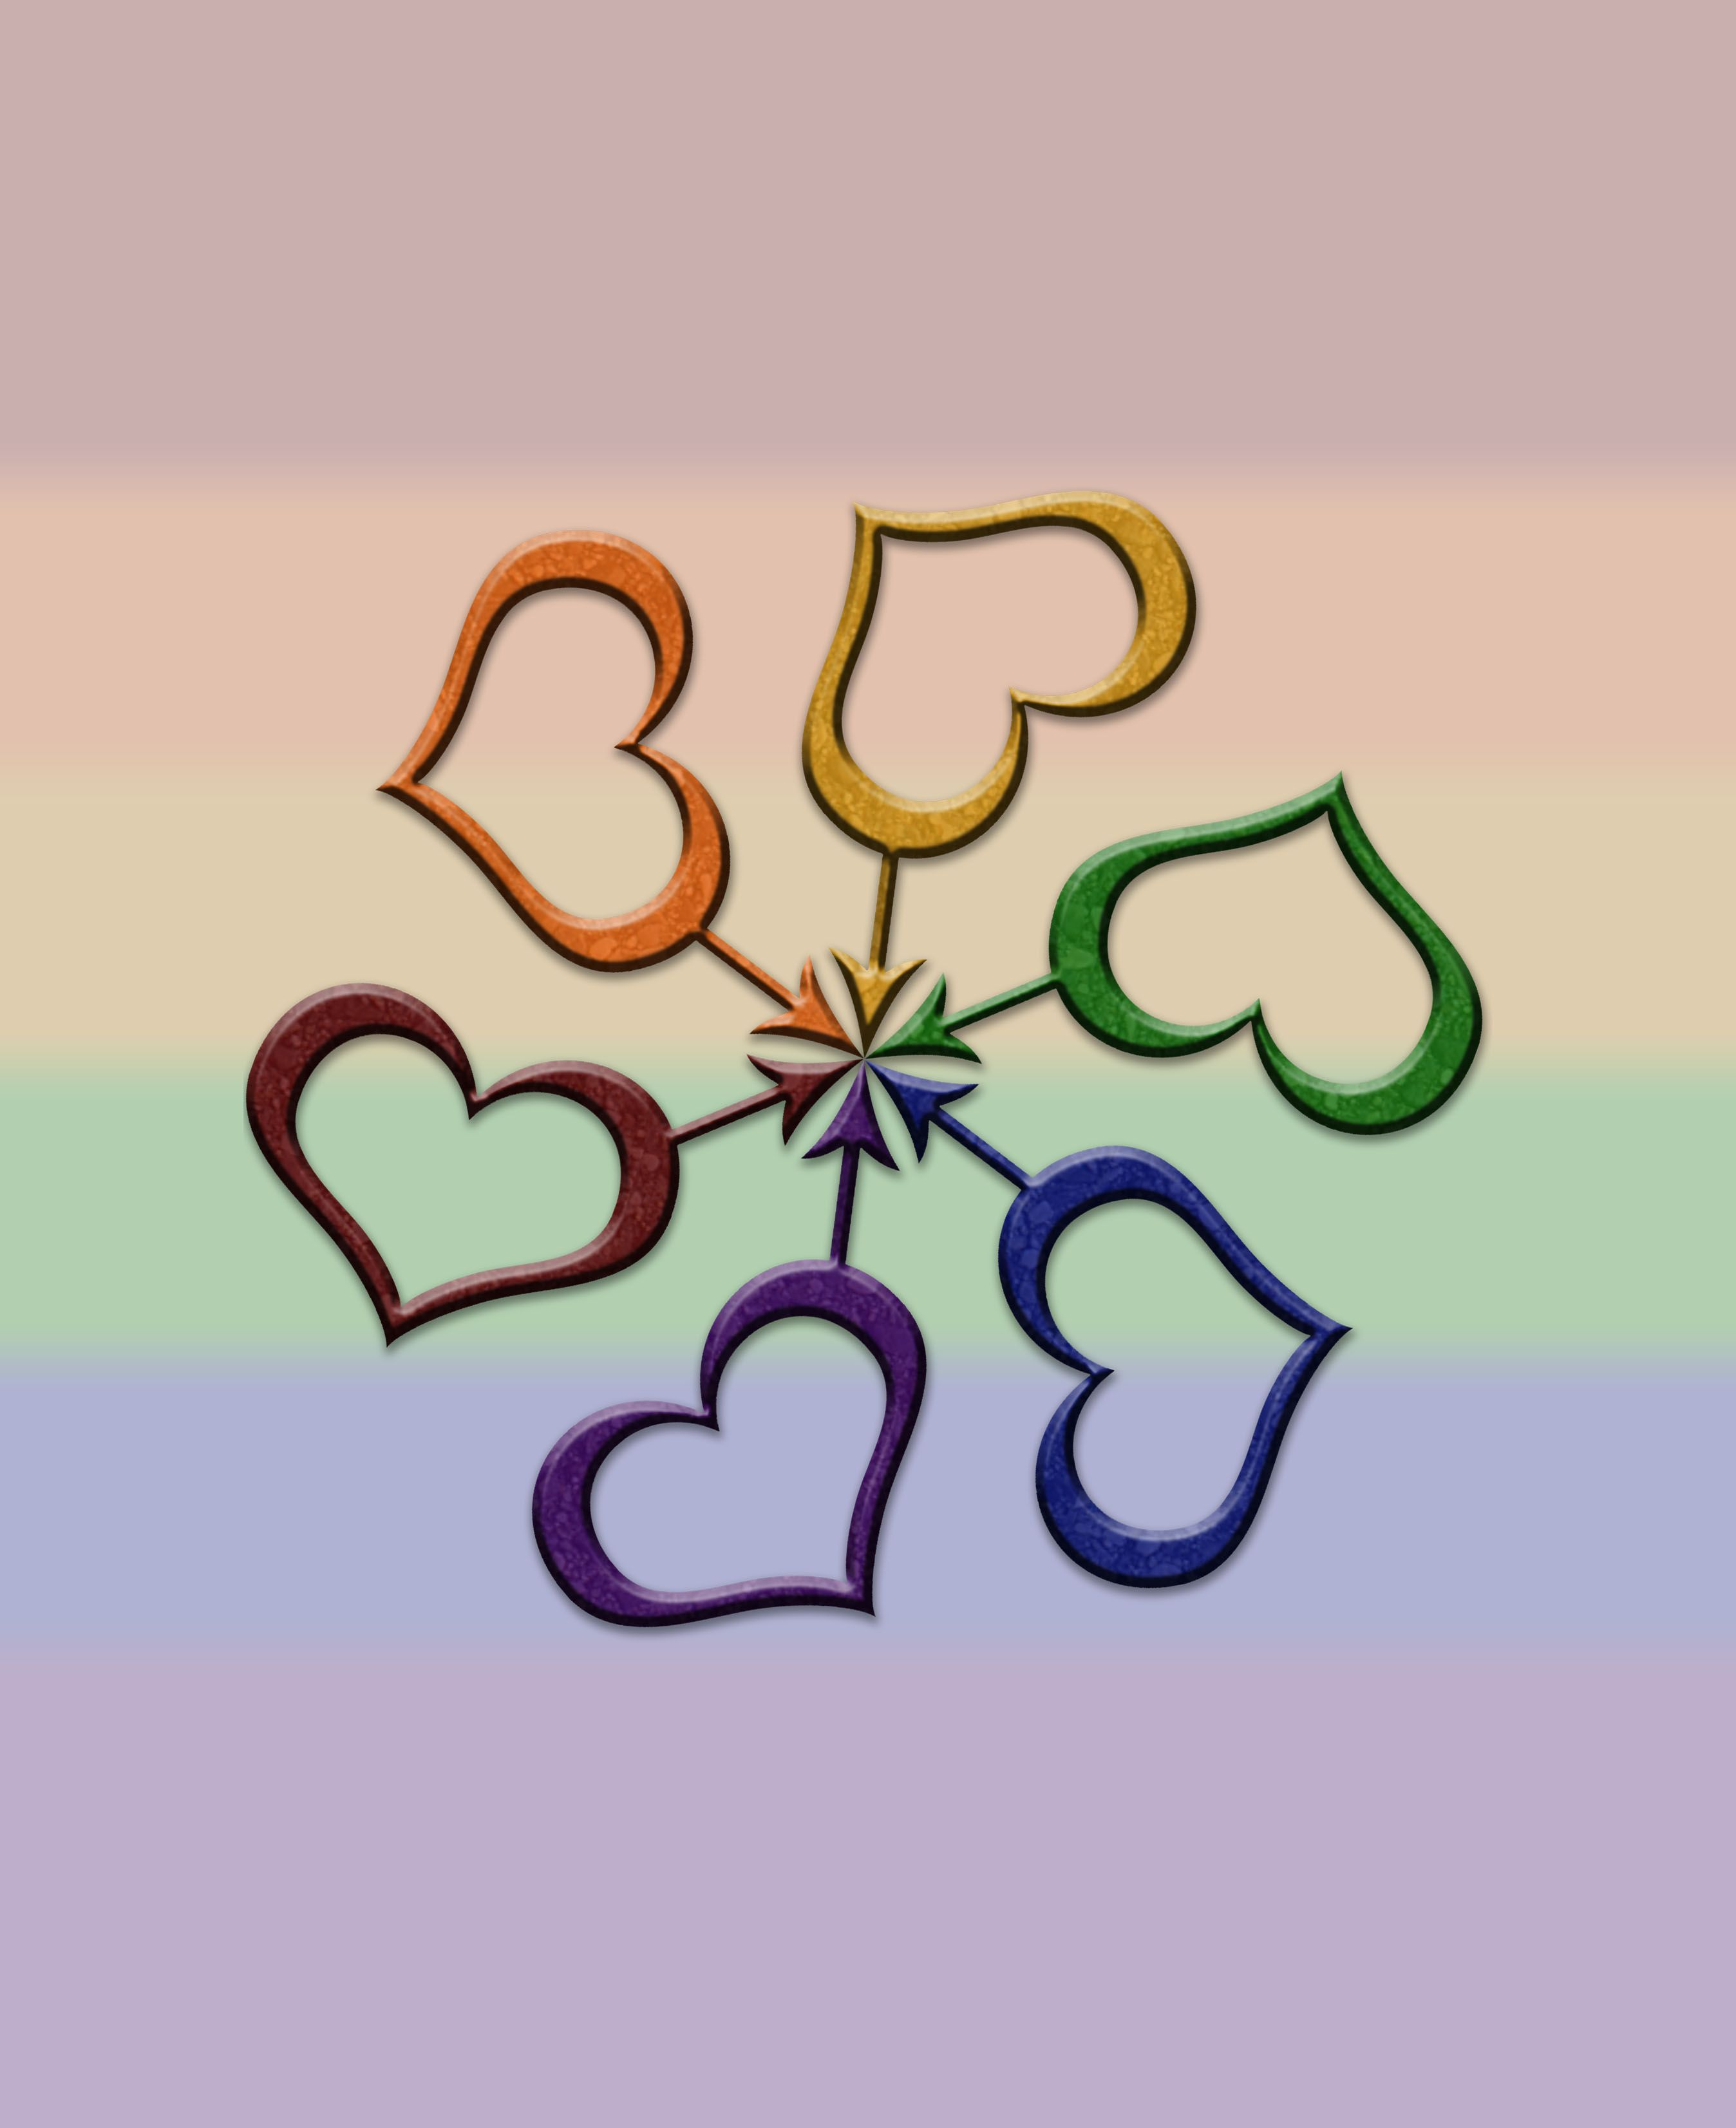 Rainbow Colored Male Gender Symbol Spiral. Gay Pride Design. 	Click to view Merchandise Available on Zazzle.	  For Free Personalization please contact me at - love.life.3984@gmail.com